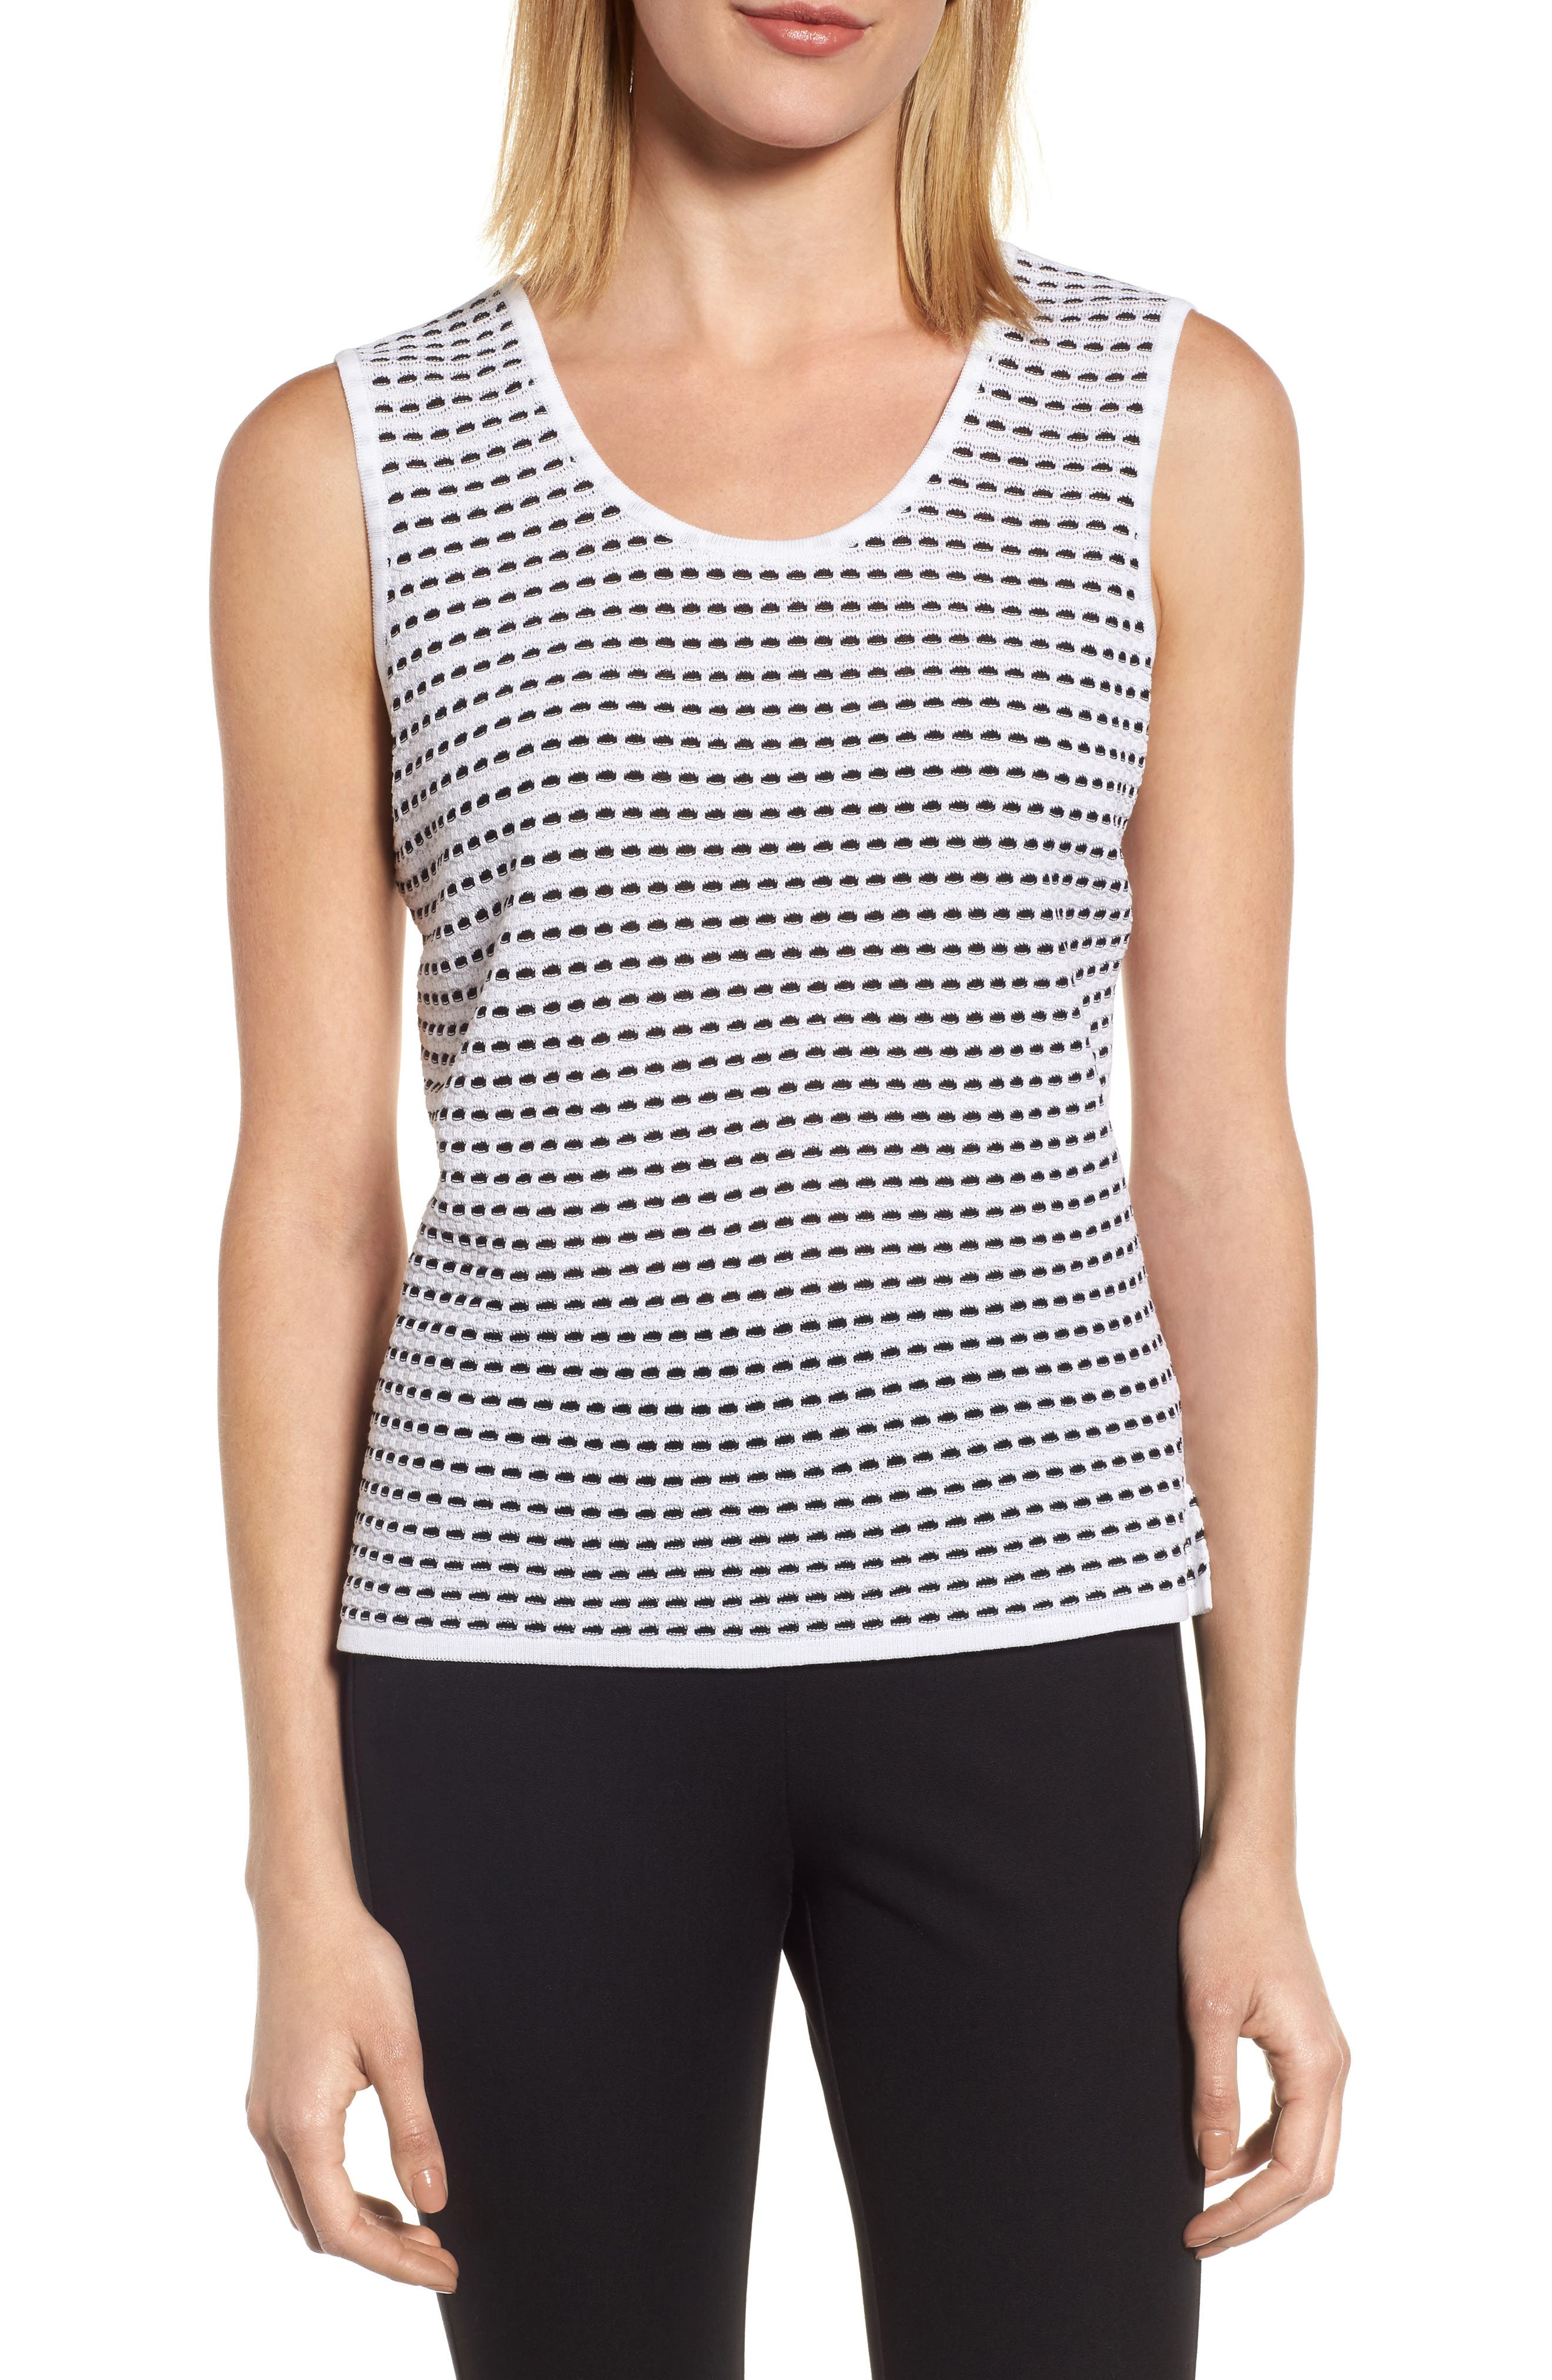 Ming Wang Scoop Neck Jacquard Knit Tank